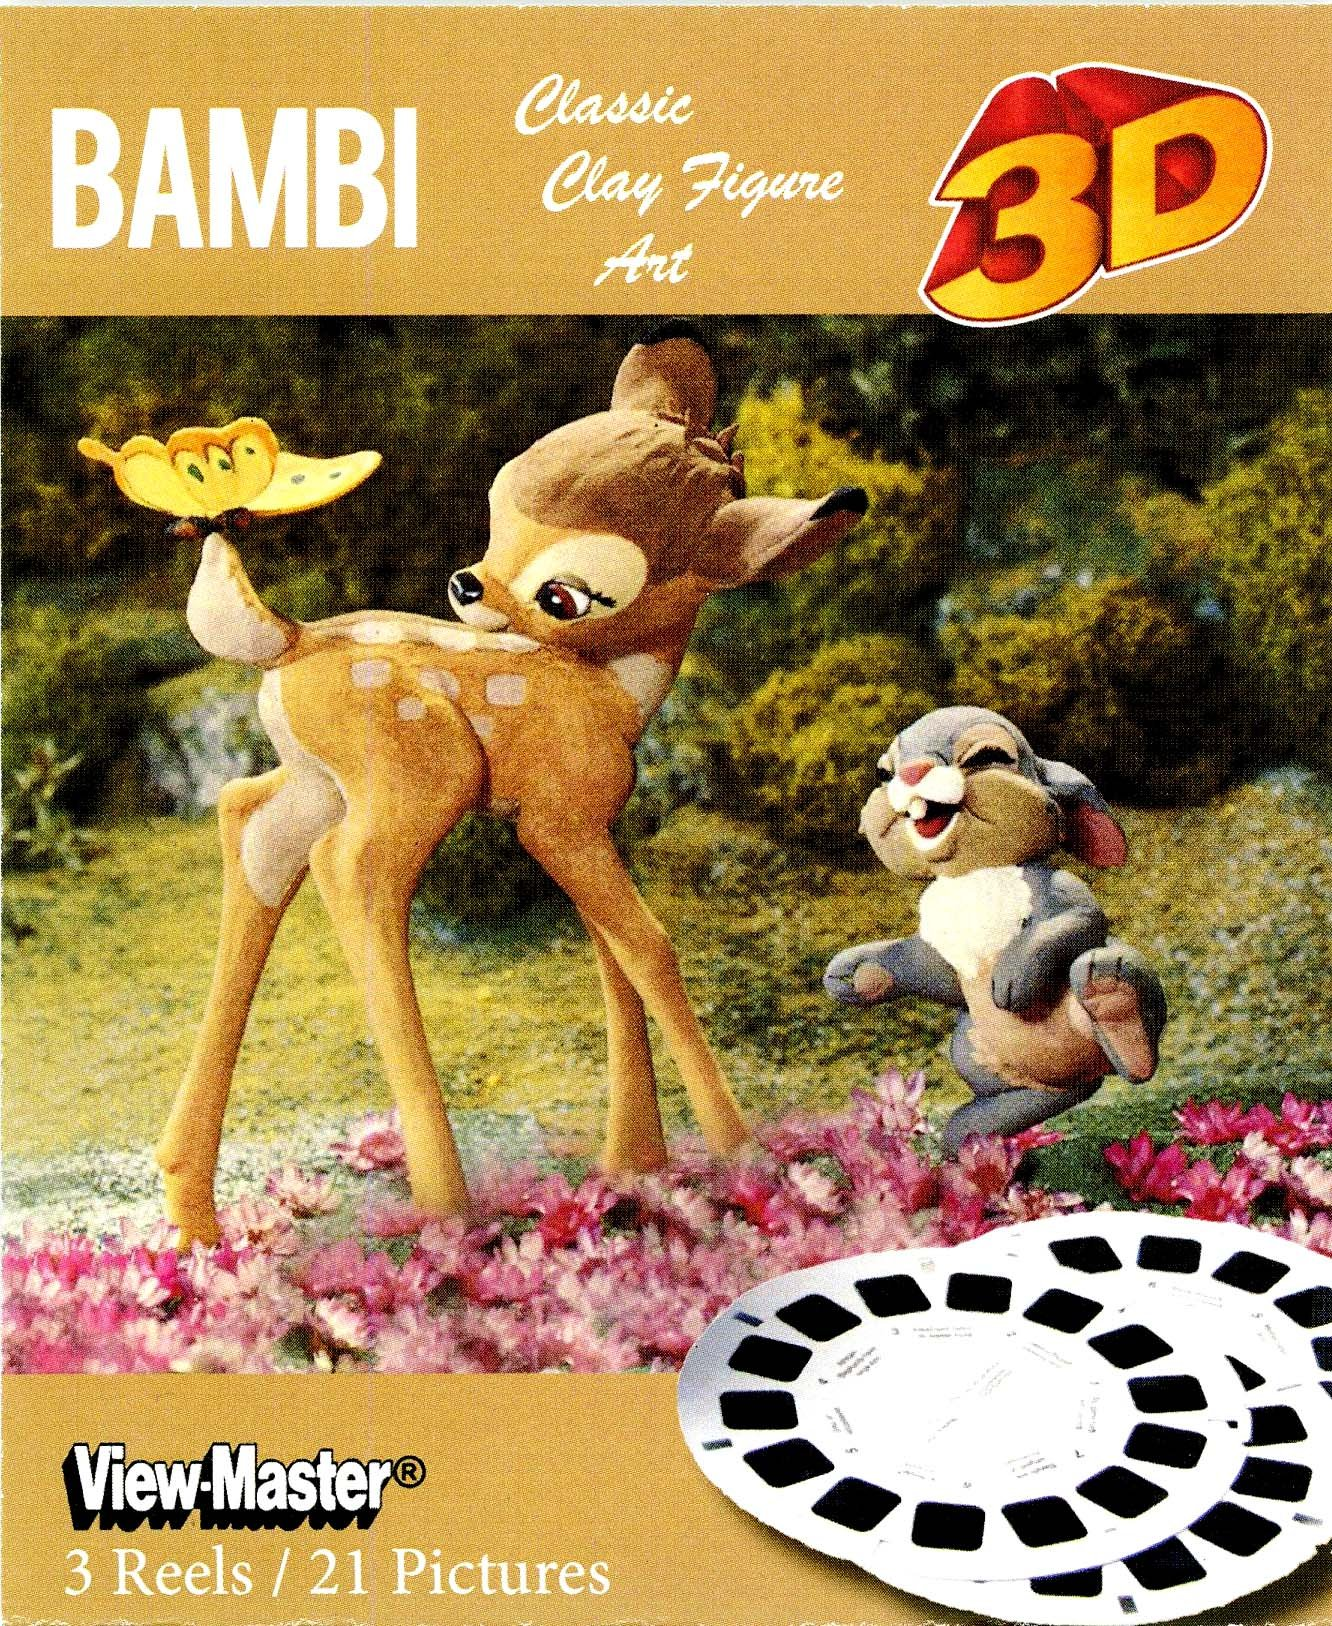 BAMBI - Classic ViewMaster - Clay Figure Art - 3 Reel Set